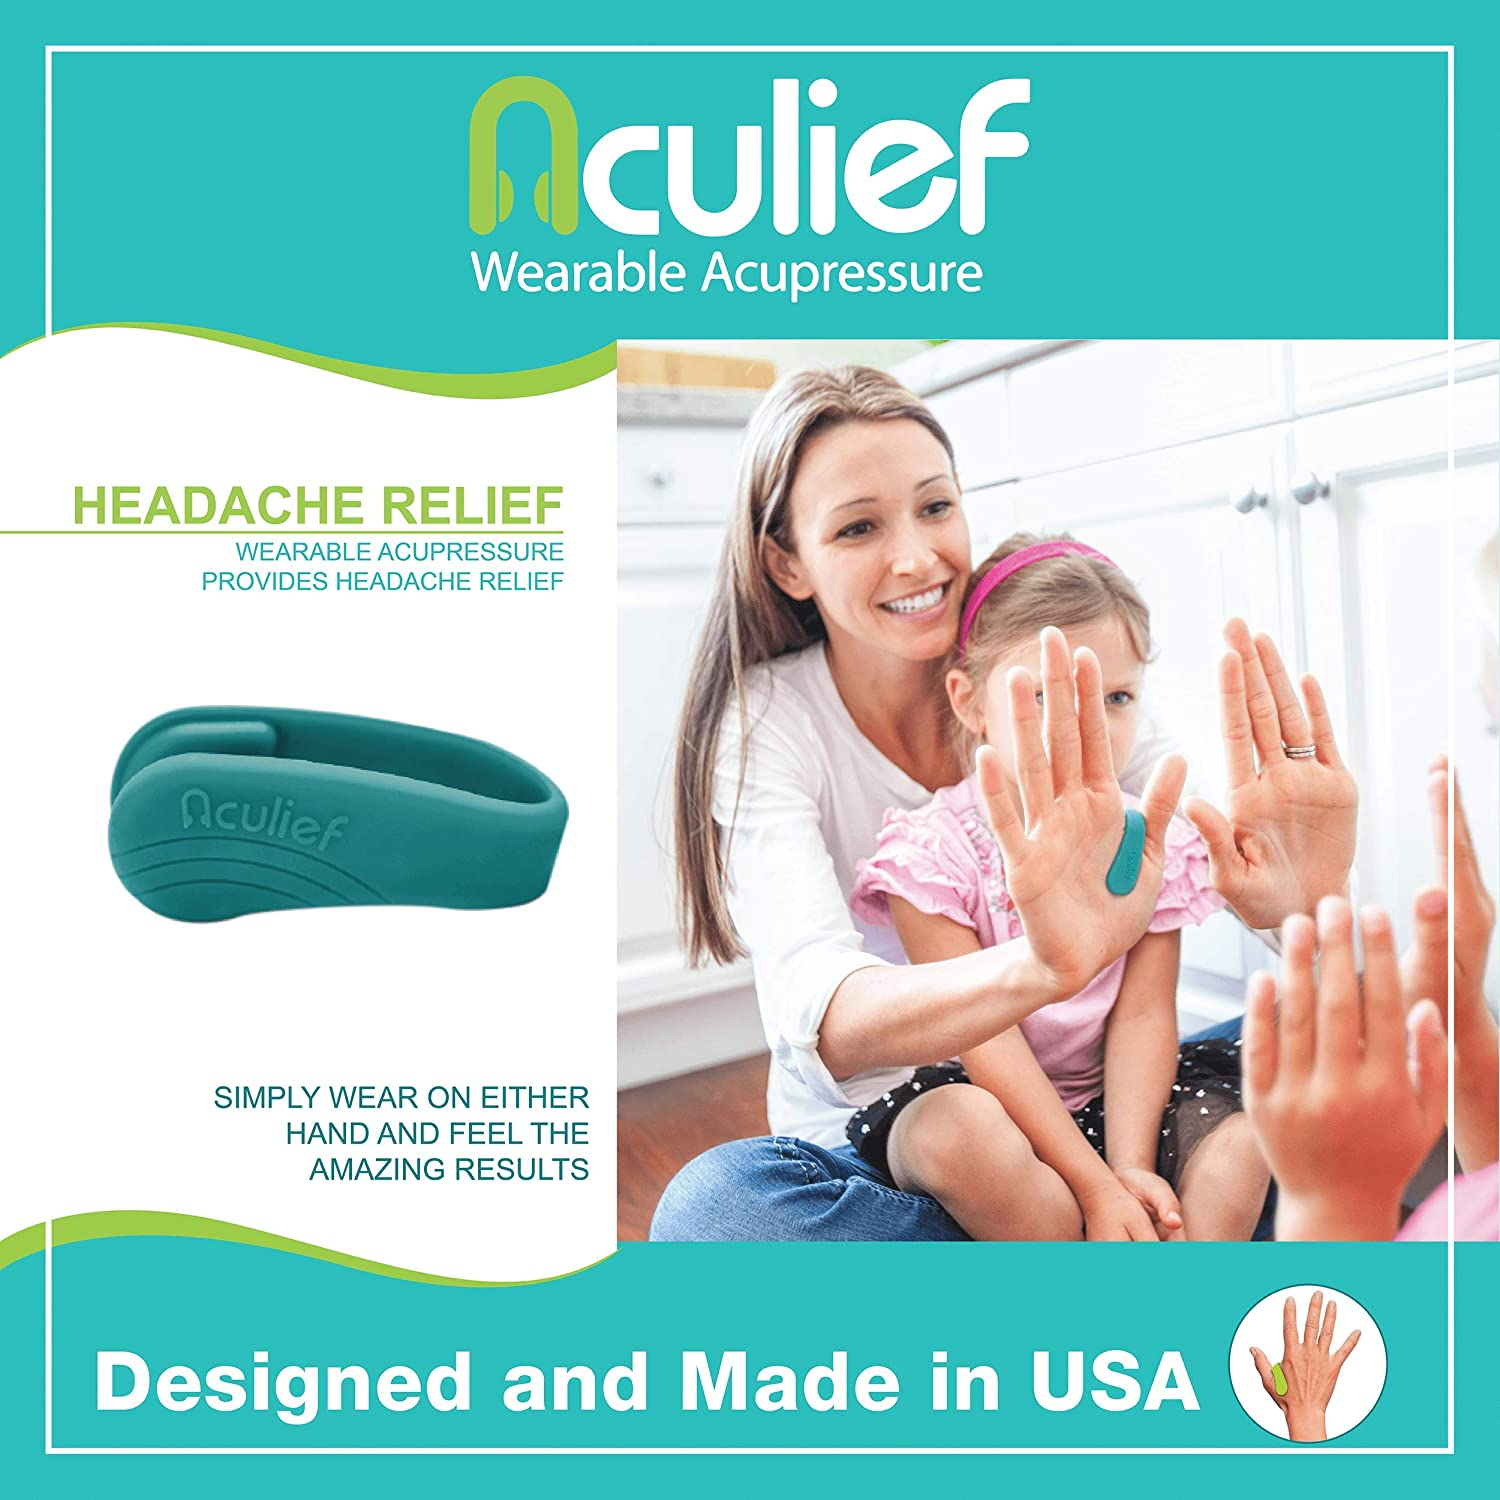 Aculief - Award Winning Natural Headache, Migraine, Tension Relief Wearable – Supporting Acupressure Relaxation, Stress Alleviation, Soothing Muscle Pain - Simple, Easy, Effective 1 Pack - (Teal): Health & Personal Care